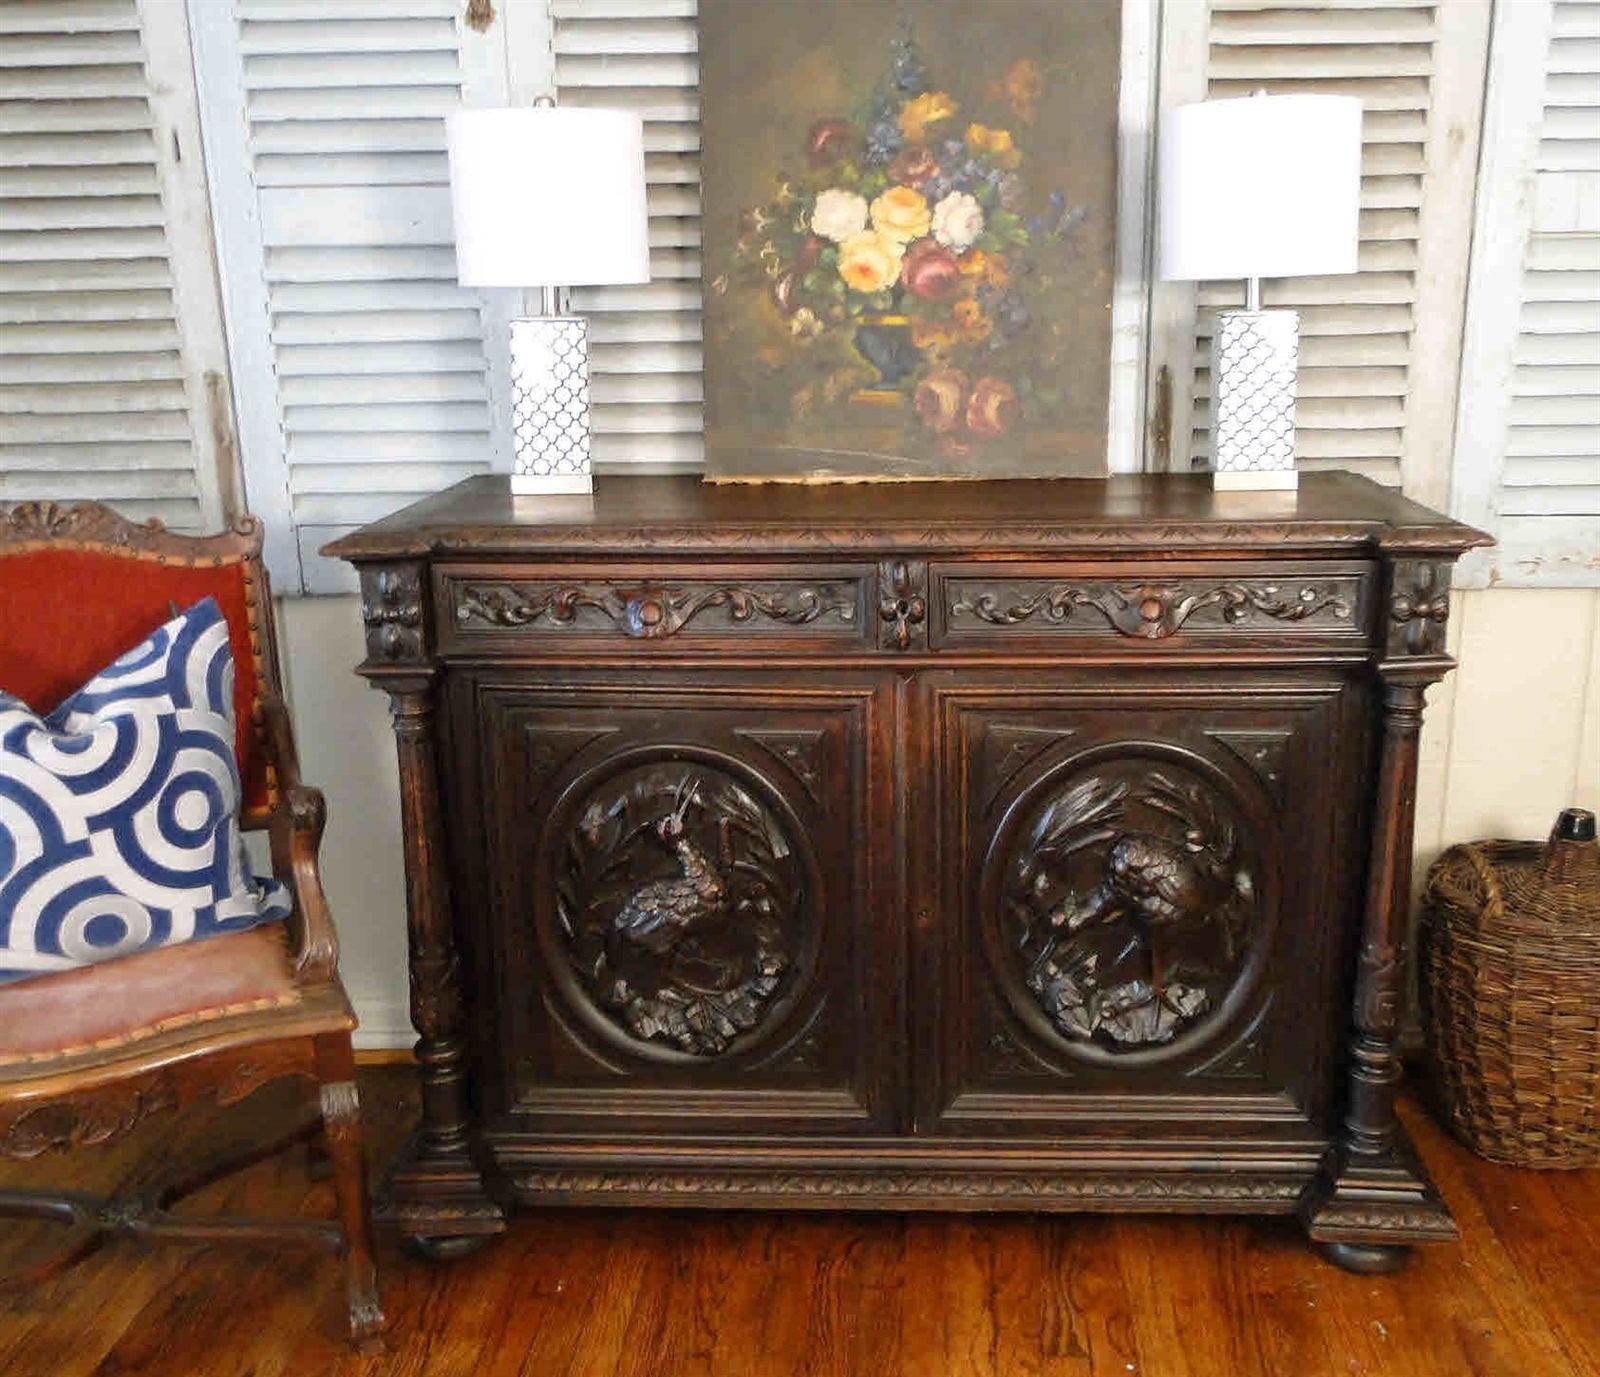 Elegant 1800's French Antique Country Buffet and Sideboard Server from the South of France